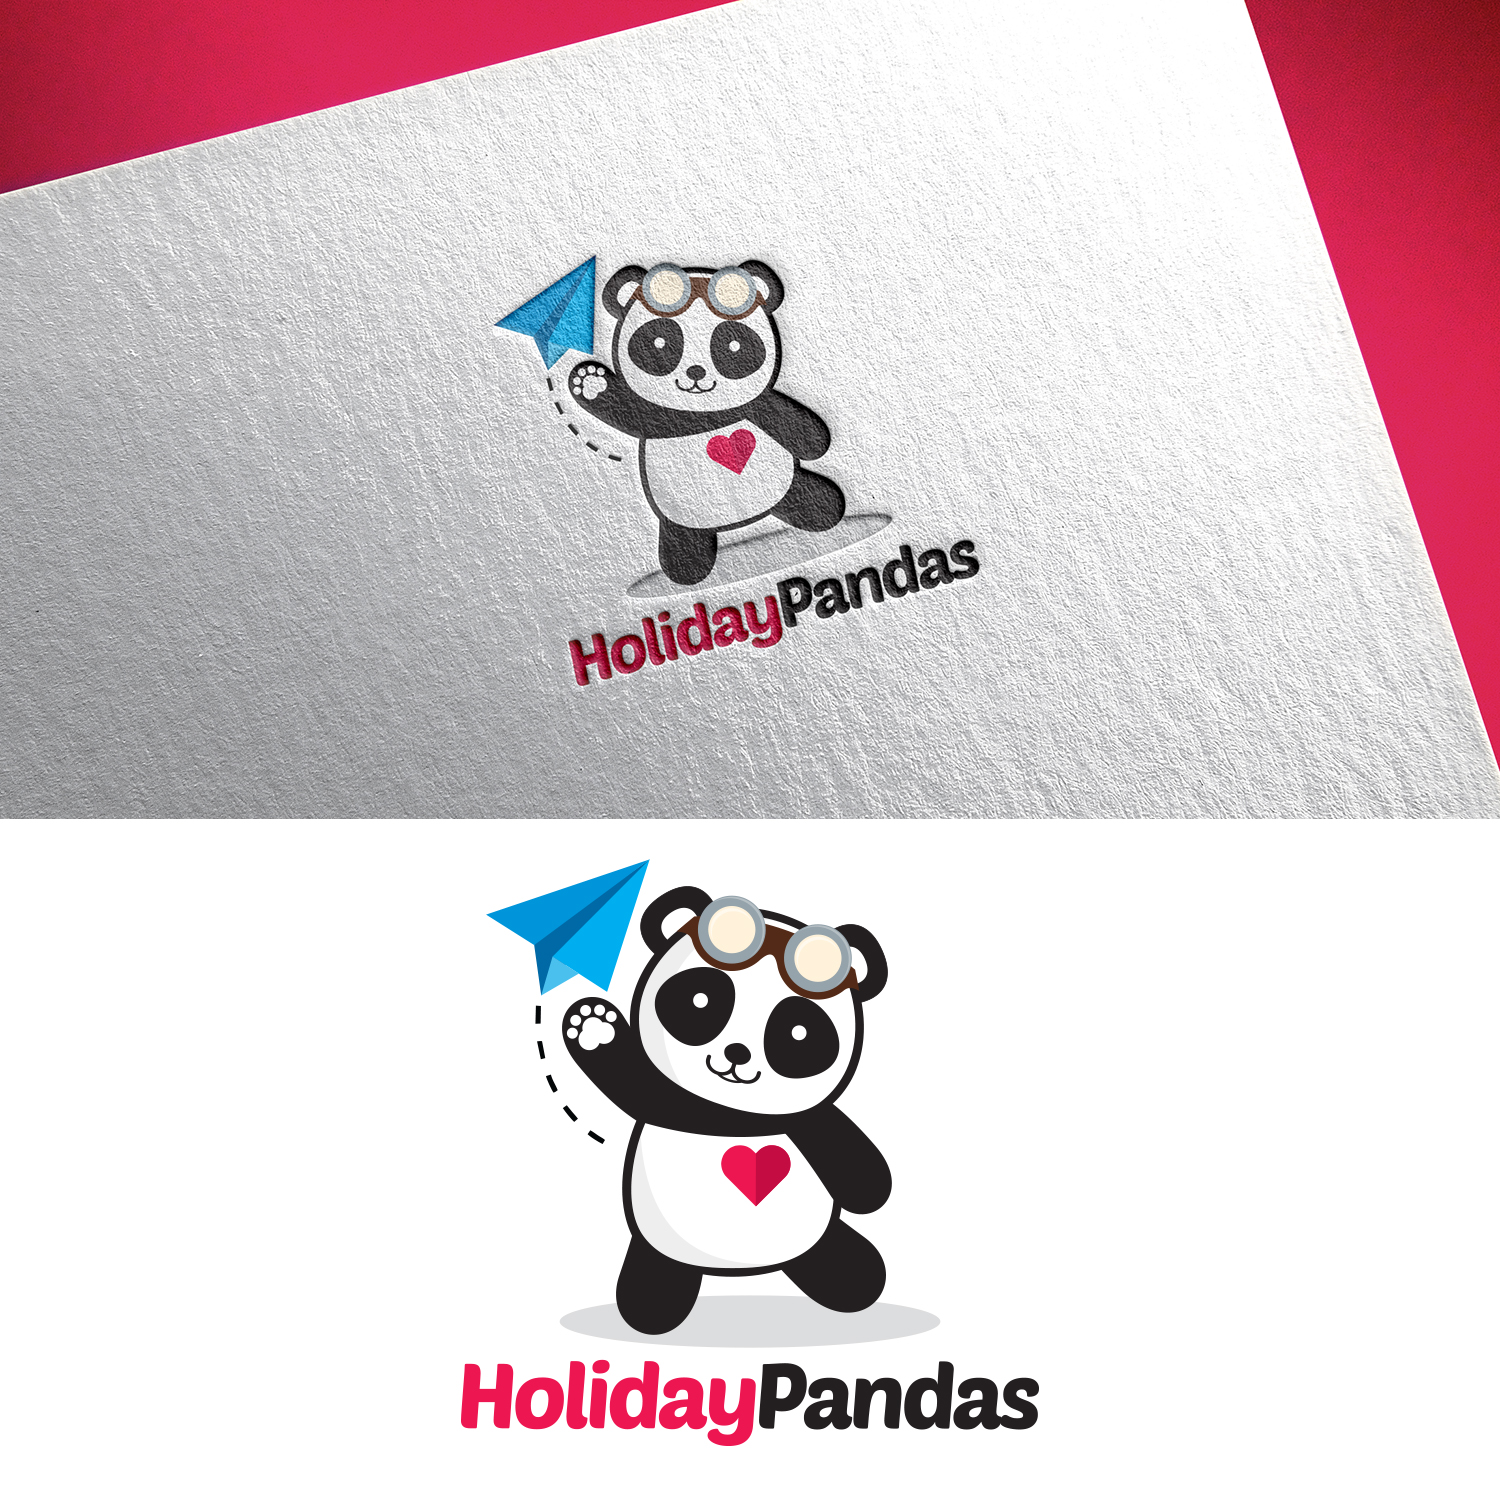 Logo Design for a Travel Holiday Company by Ana White